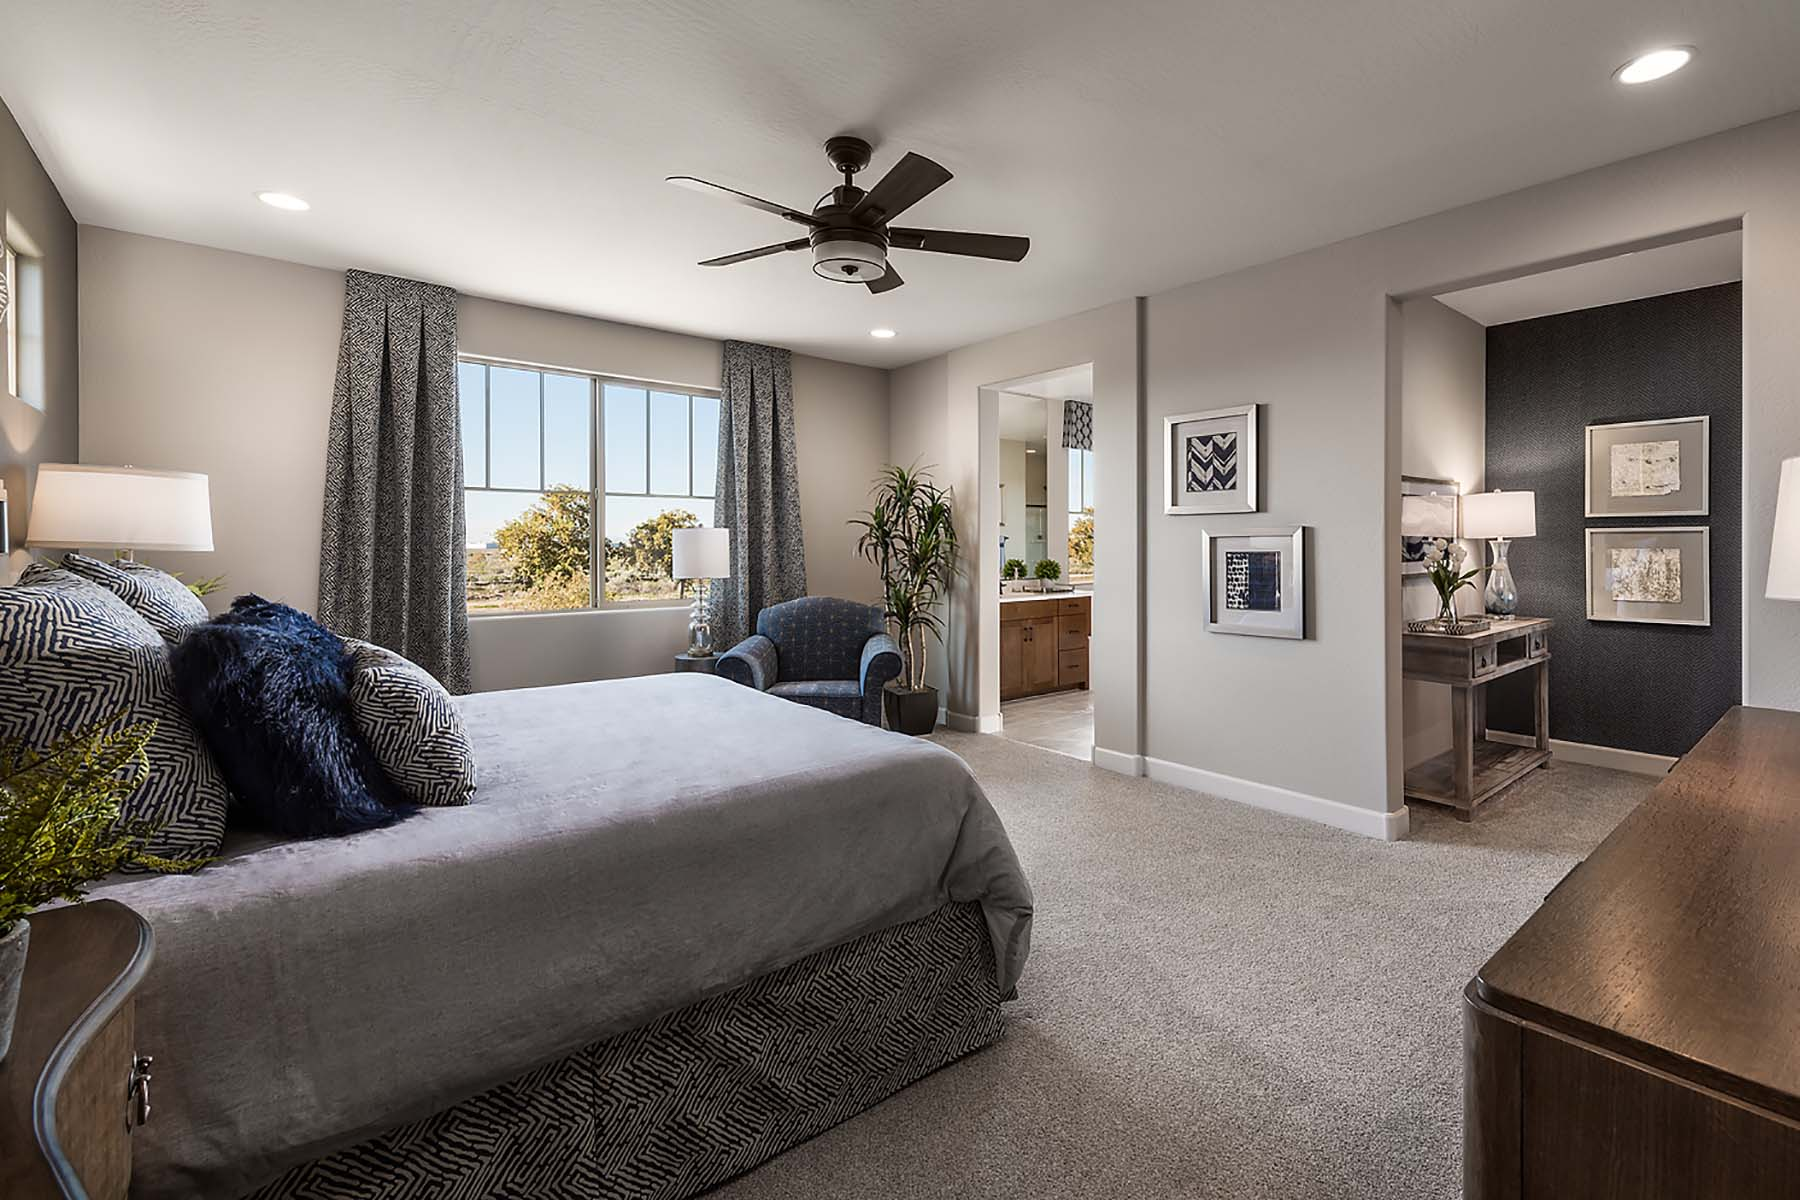 Leander Plan Bedroom at Vista Diamante at Camelback Ranch in Phoenix Arizona by Mattamy Homes